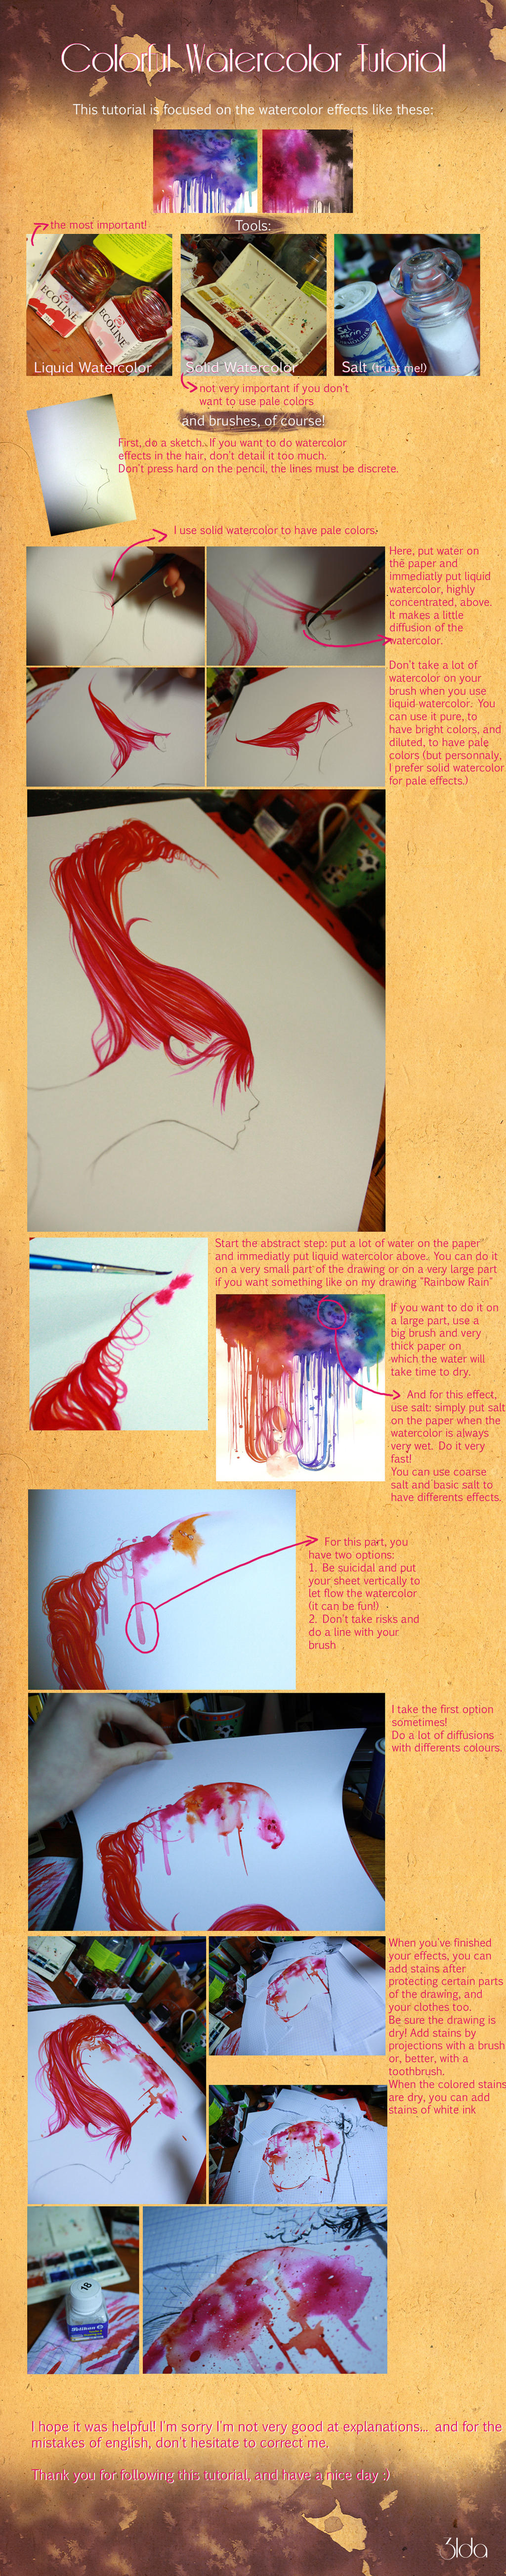 Watercolor effects tutorial by 3lda on deviantart for Watercolor tutorial